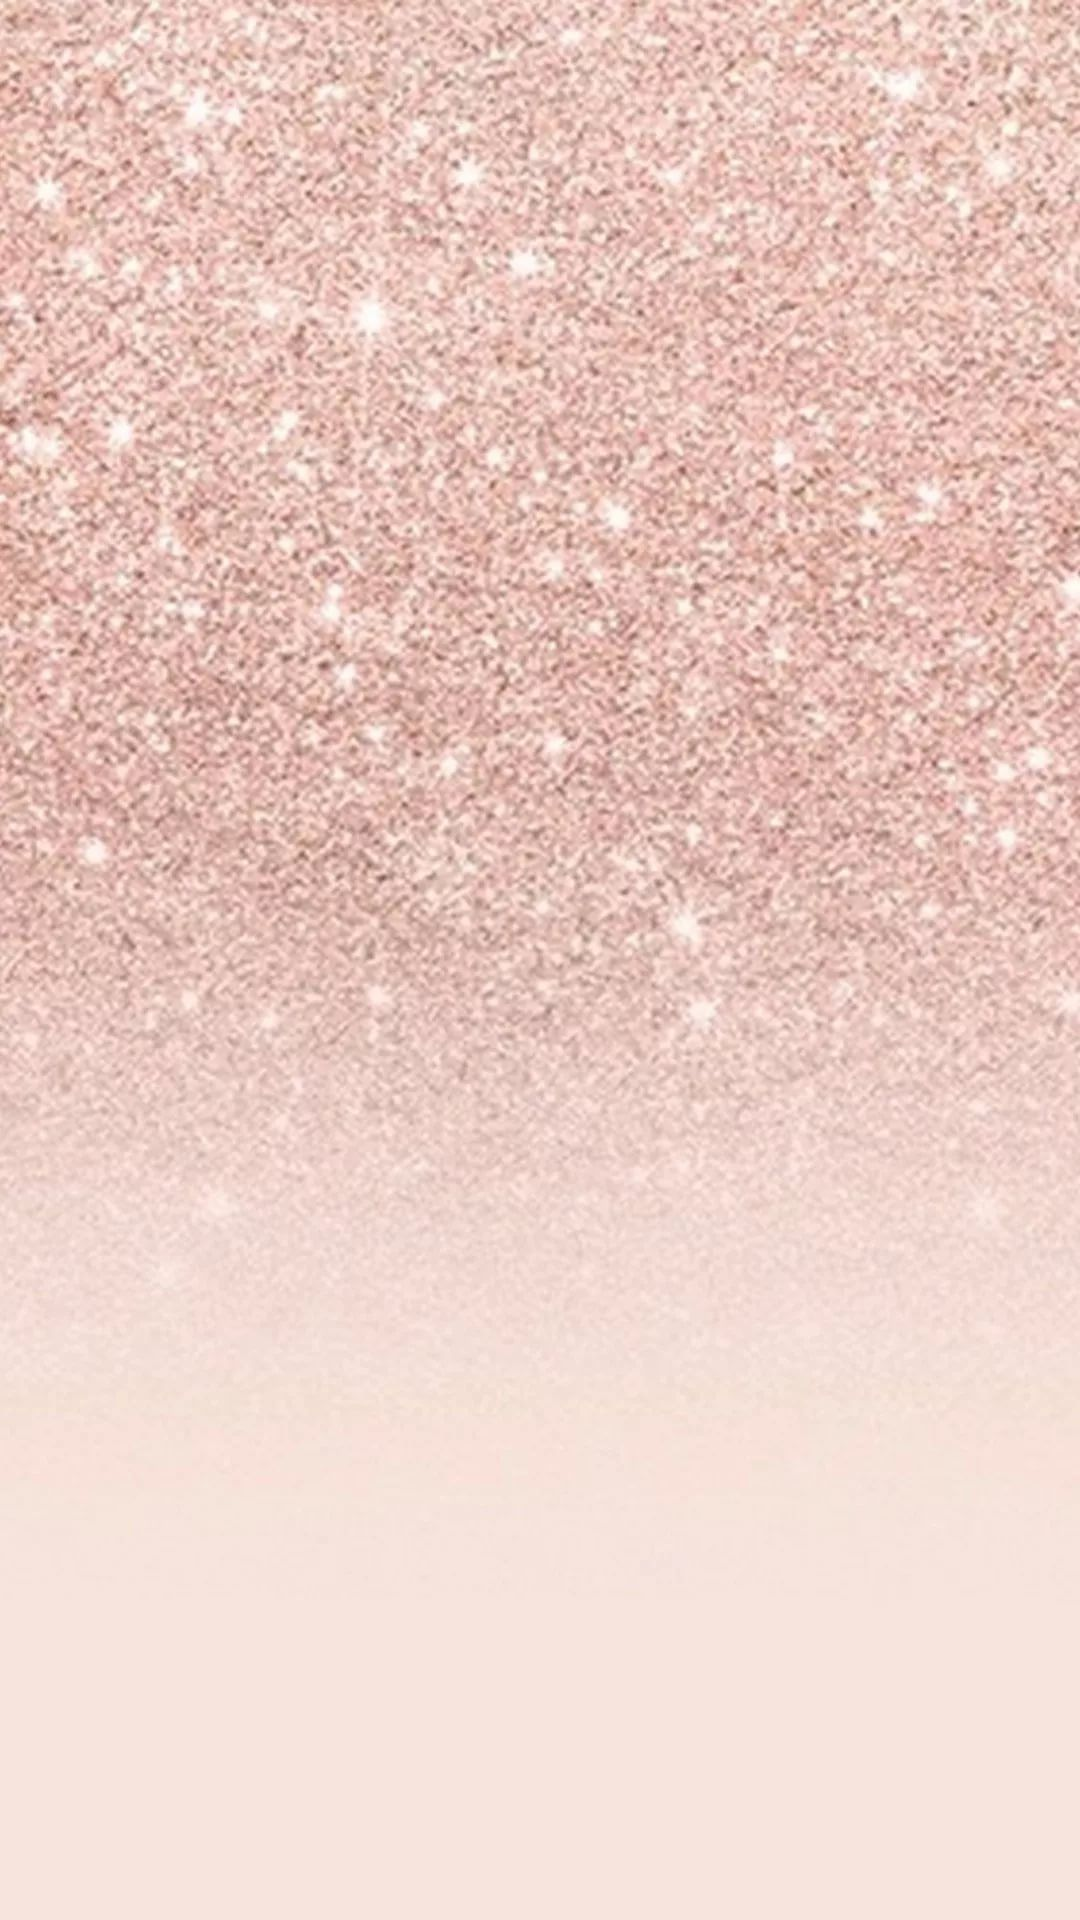 Rose Gold Heart Wallpapers - Wallpaper Cave